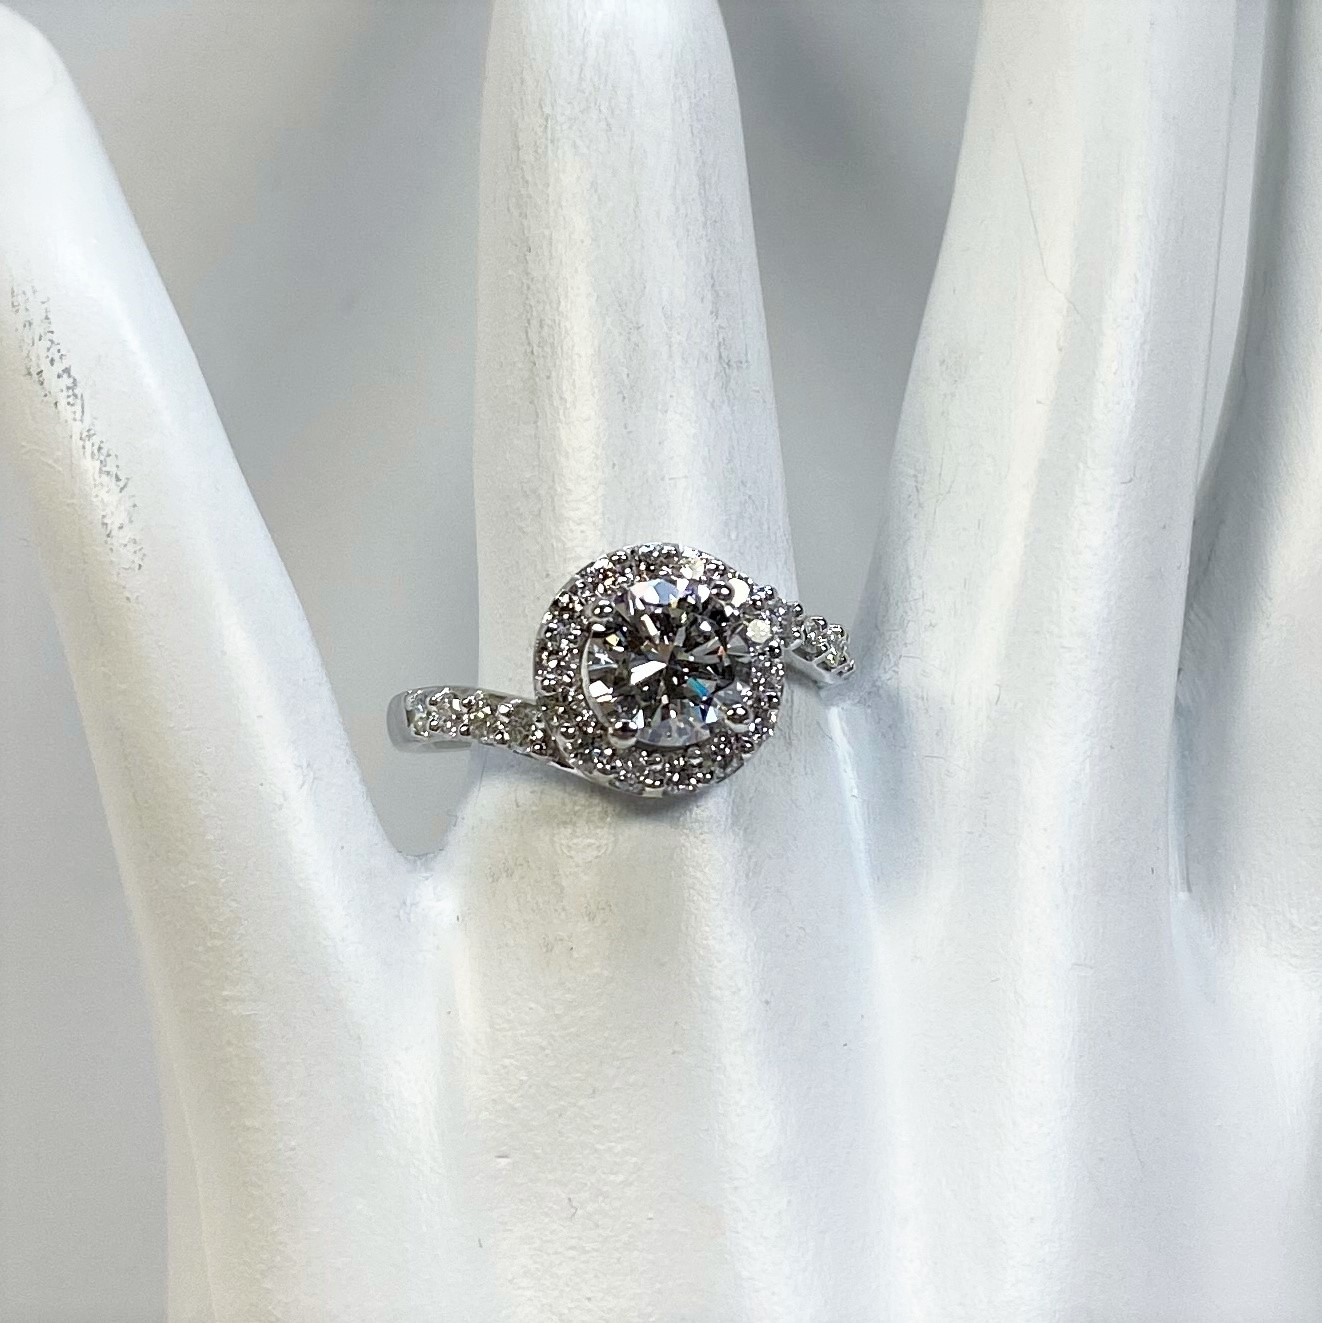 1.50 Carats Total Weight Diamond Ring In 18K White Gold